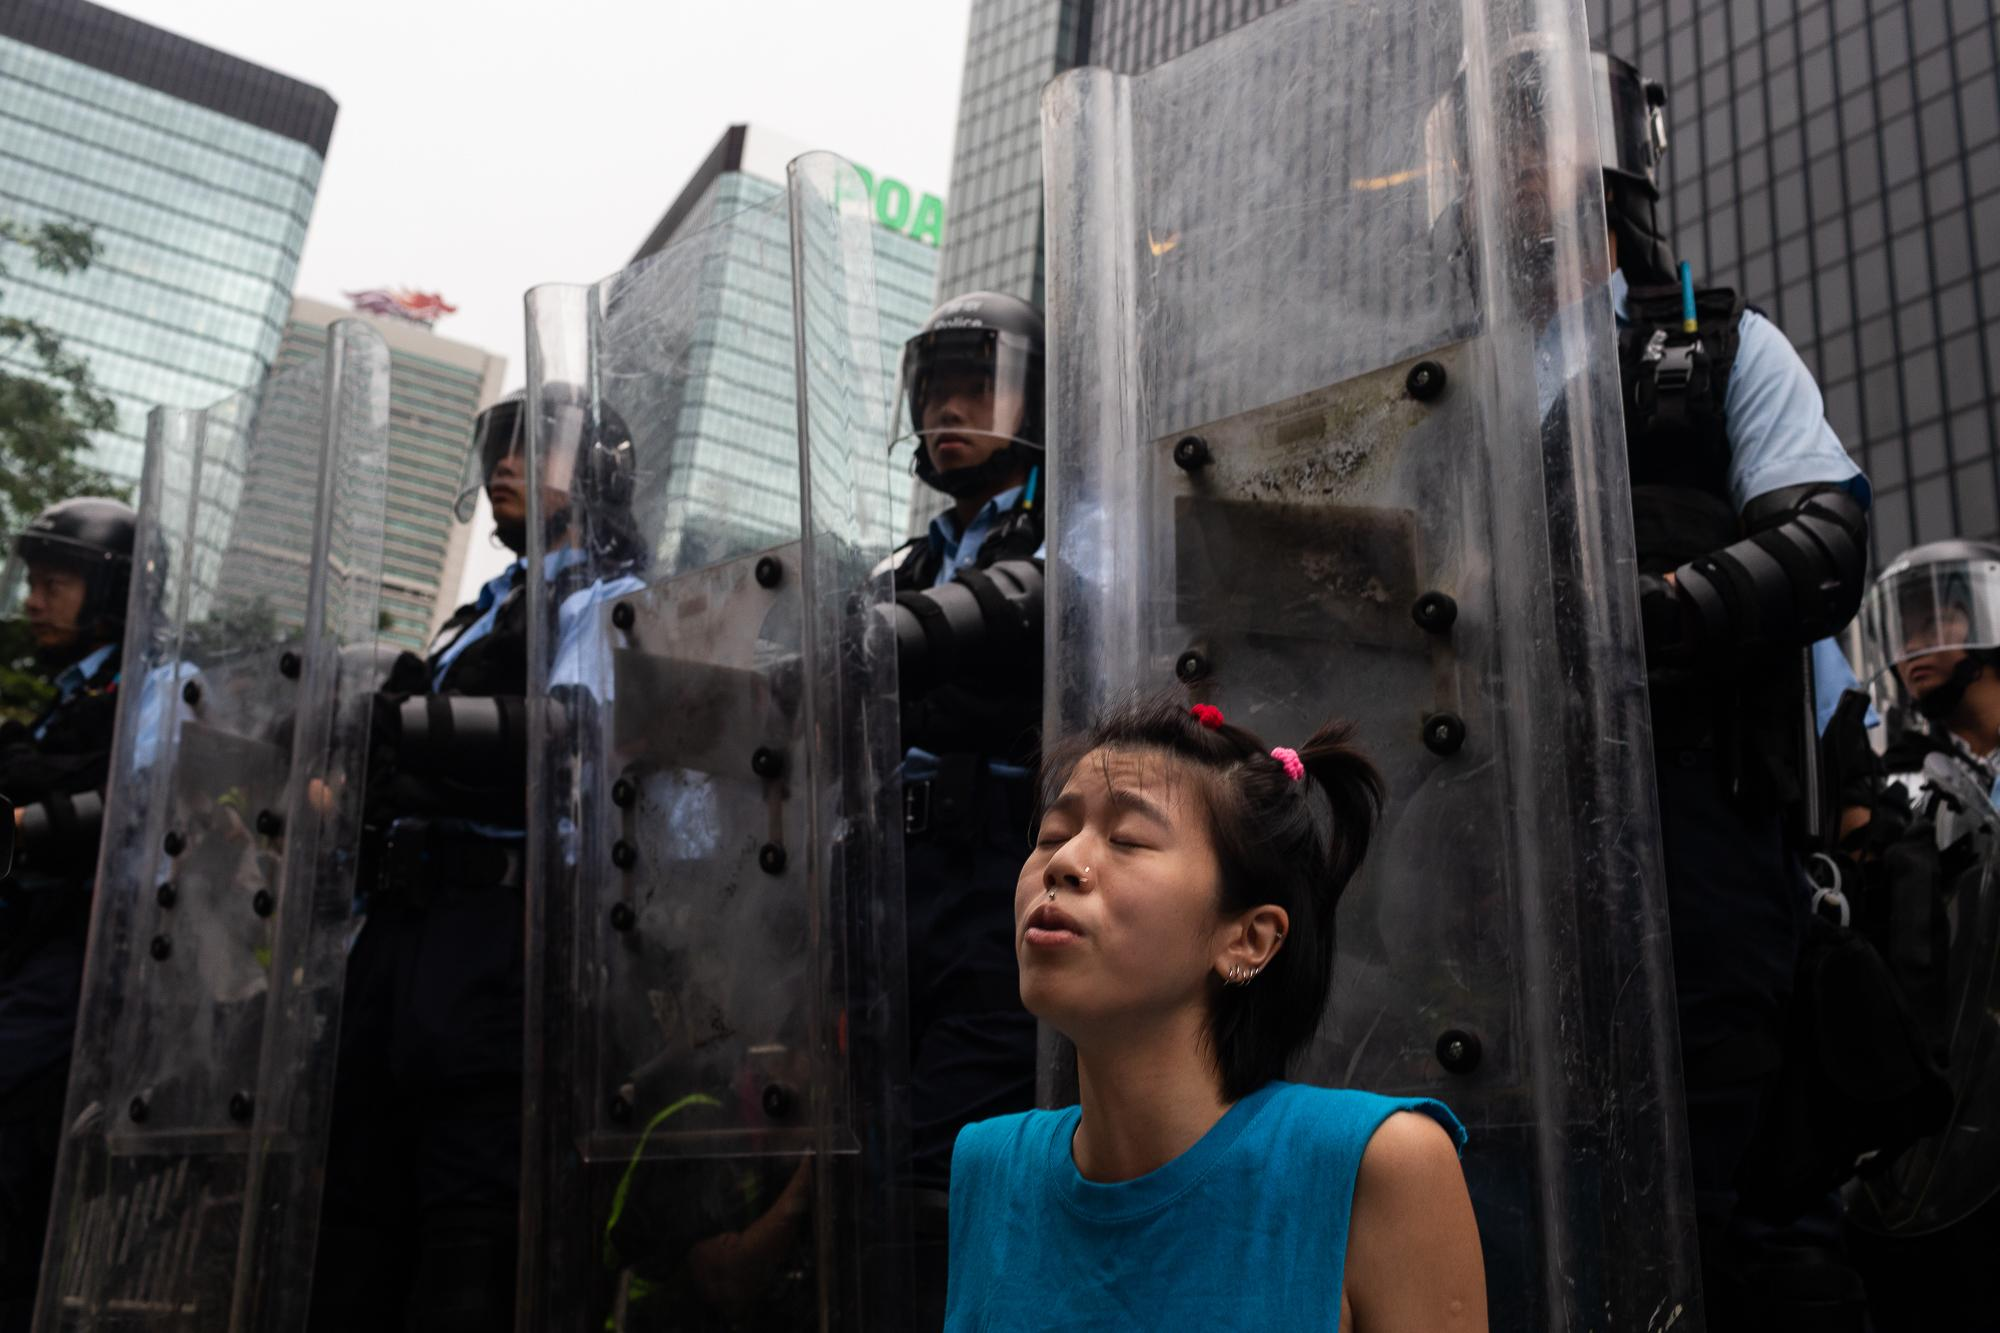 A demonstrator sits-in in front of the legislative council during a protest against a proposed extradition law in Hong Kong. Protesters blocking major roads in downtown Hong Kong vowed to stay until the government withdraws controversial legislation that would for the first time allow extraditions to China.